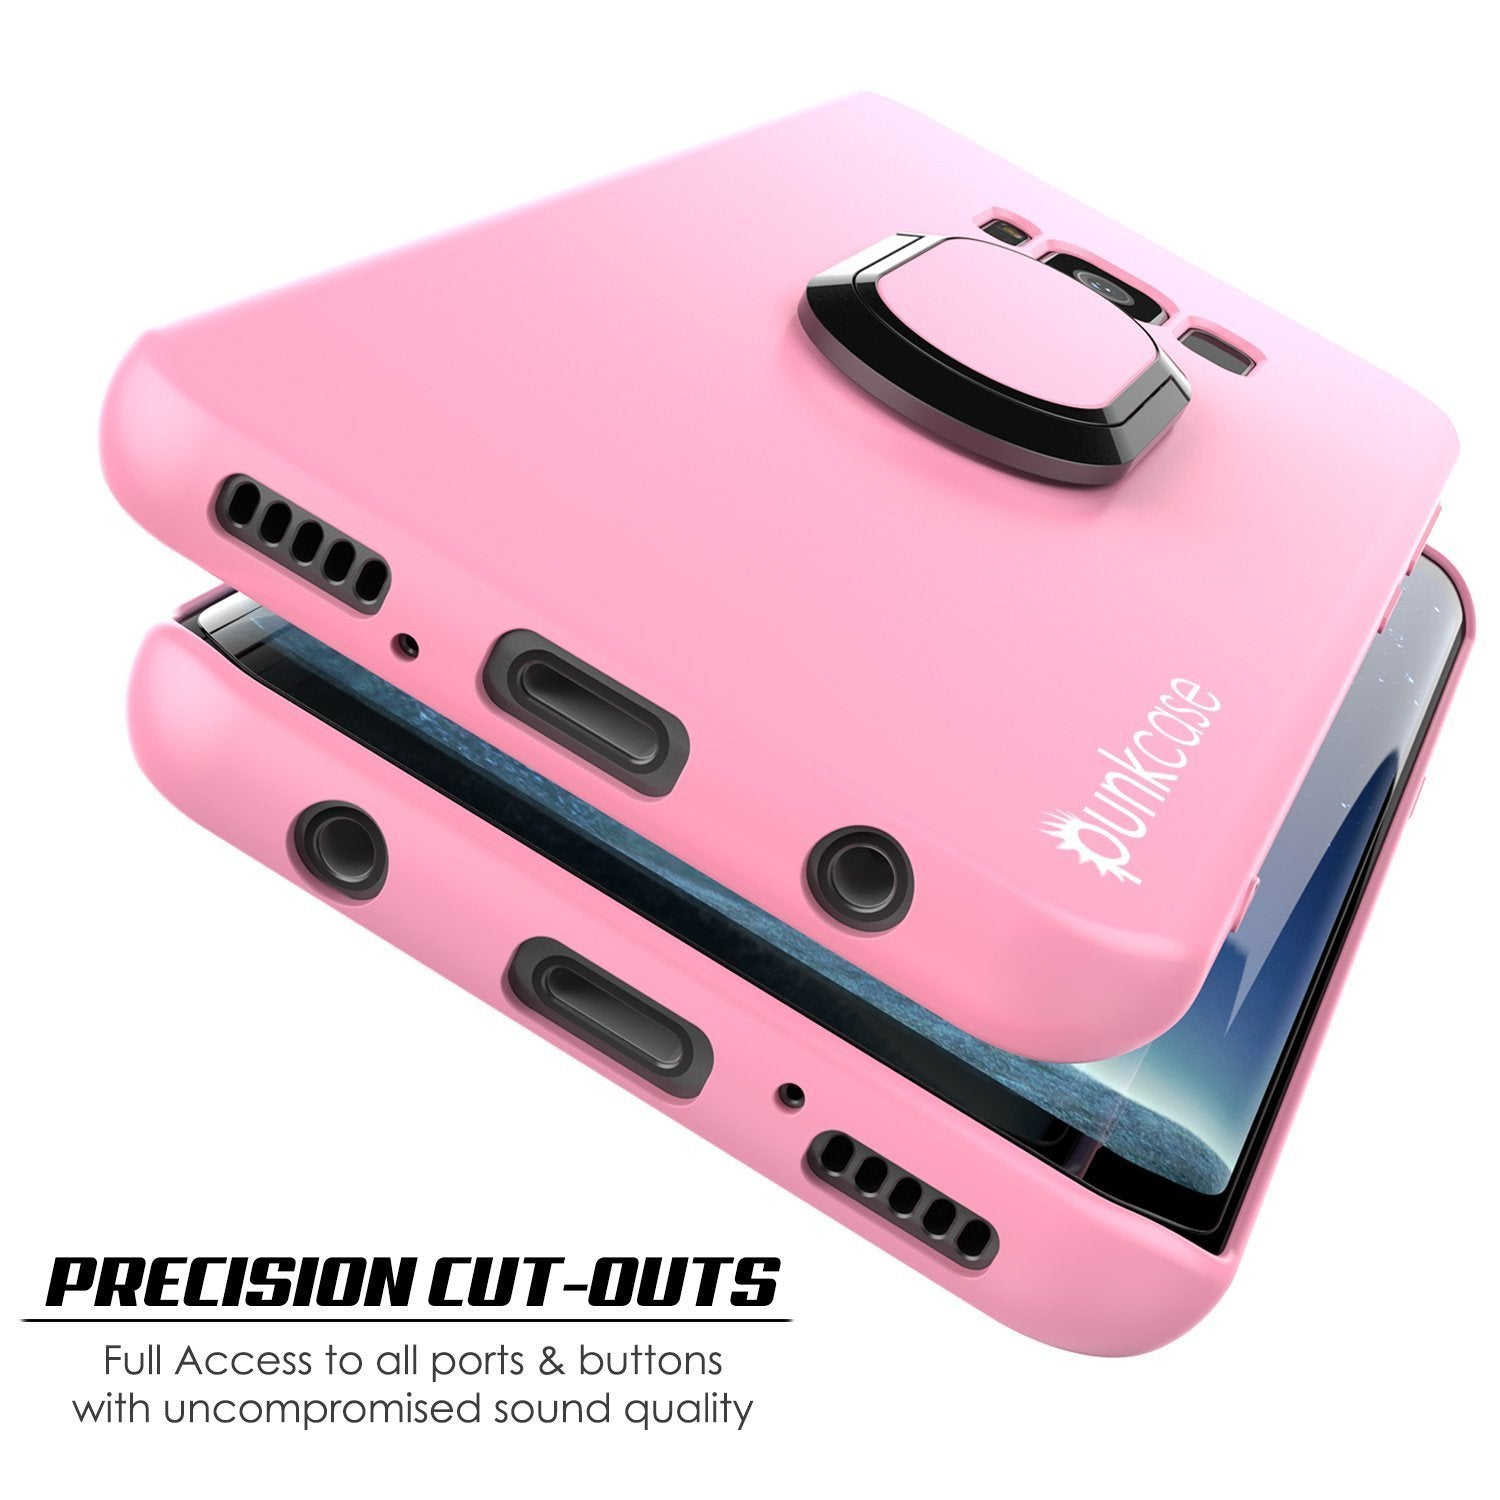 Galaxy S8 Case, Punkcase Magnetix Protective TPU Cover W/ Kickstand, Screen Protector [Pink]